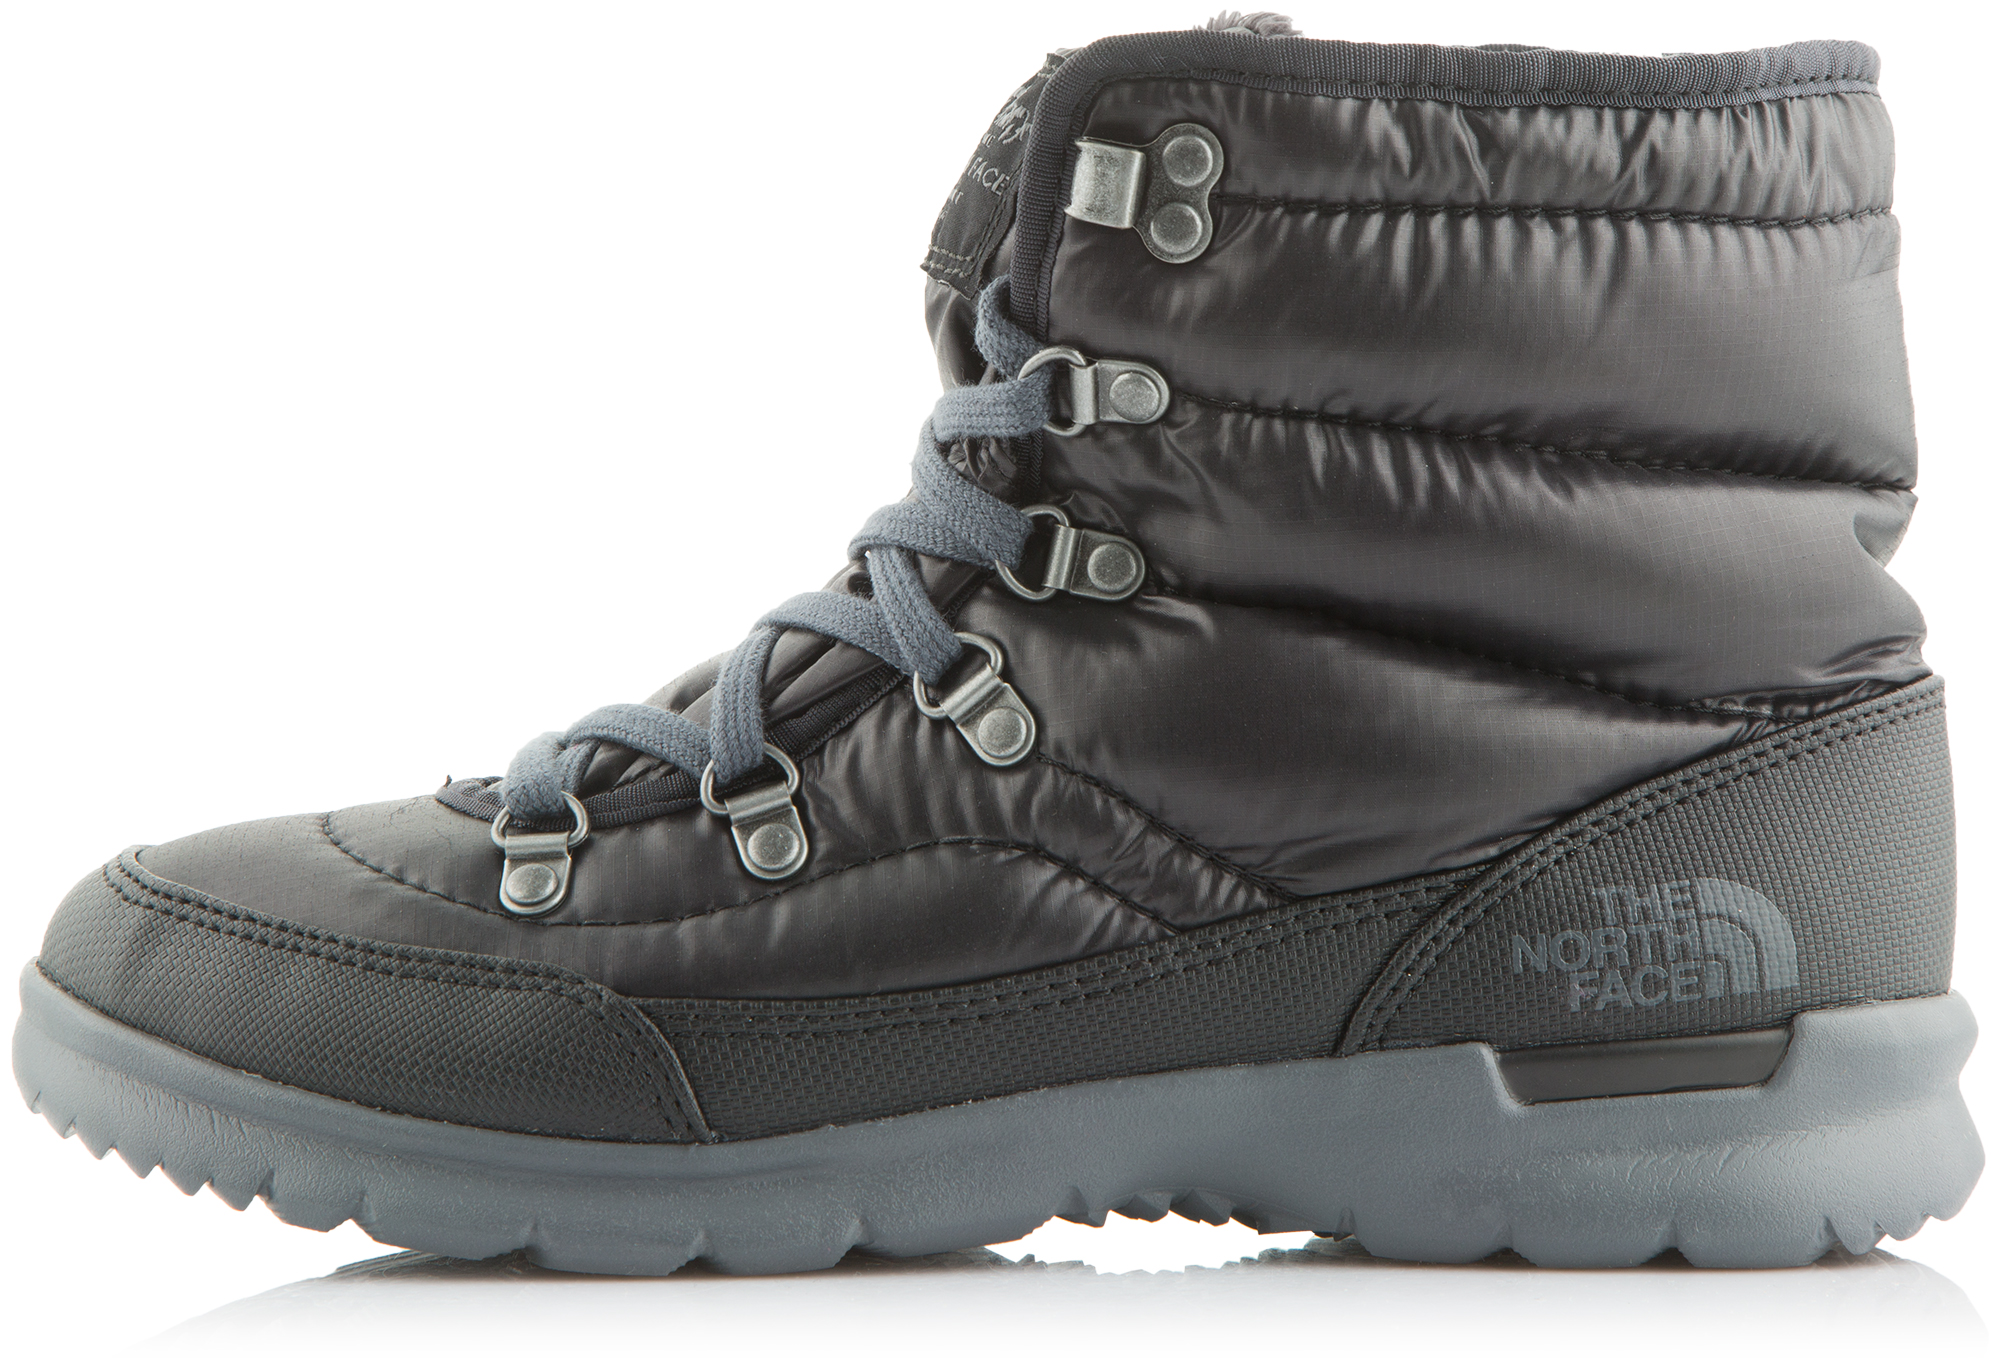 The North Face Ботинки утепленные женские Thermoball Lace Ii, размер 40